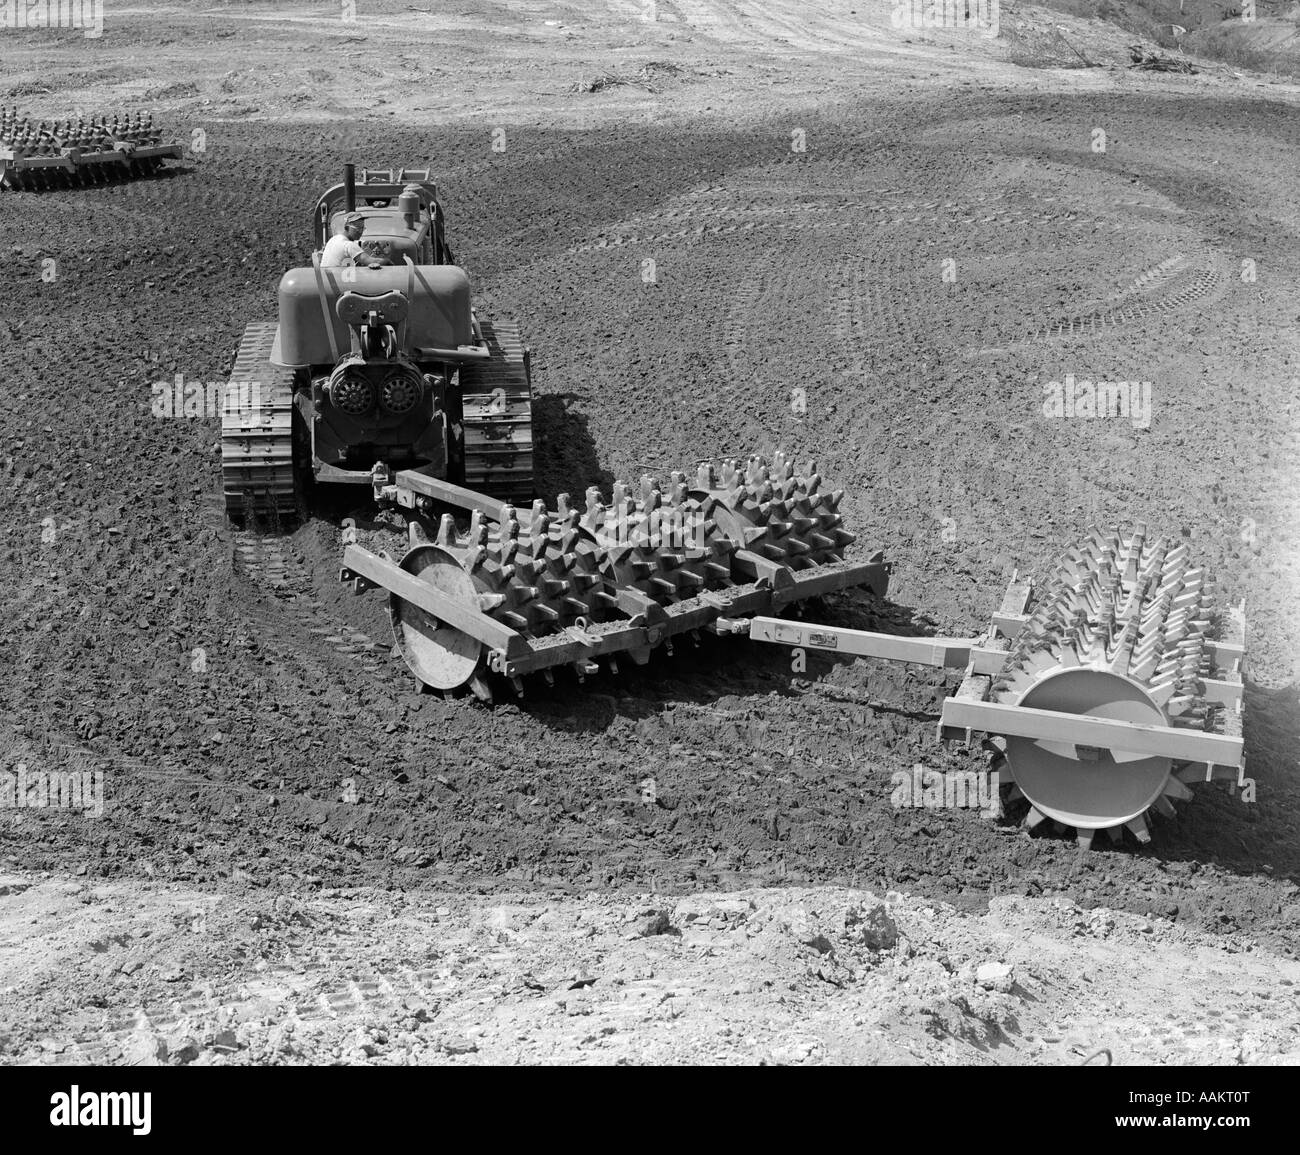 1960s MAN OPERATING GRADING MACHINE IN SOIL CONSTRUCTION SITE HEAVY MACHINERY ATTACHMENT ROLLER WITH SPIKES - Stock Image